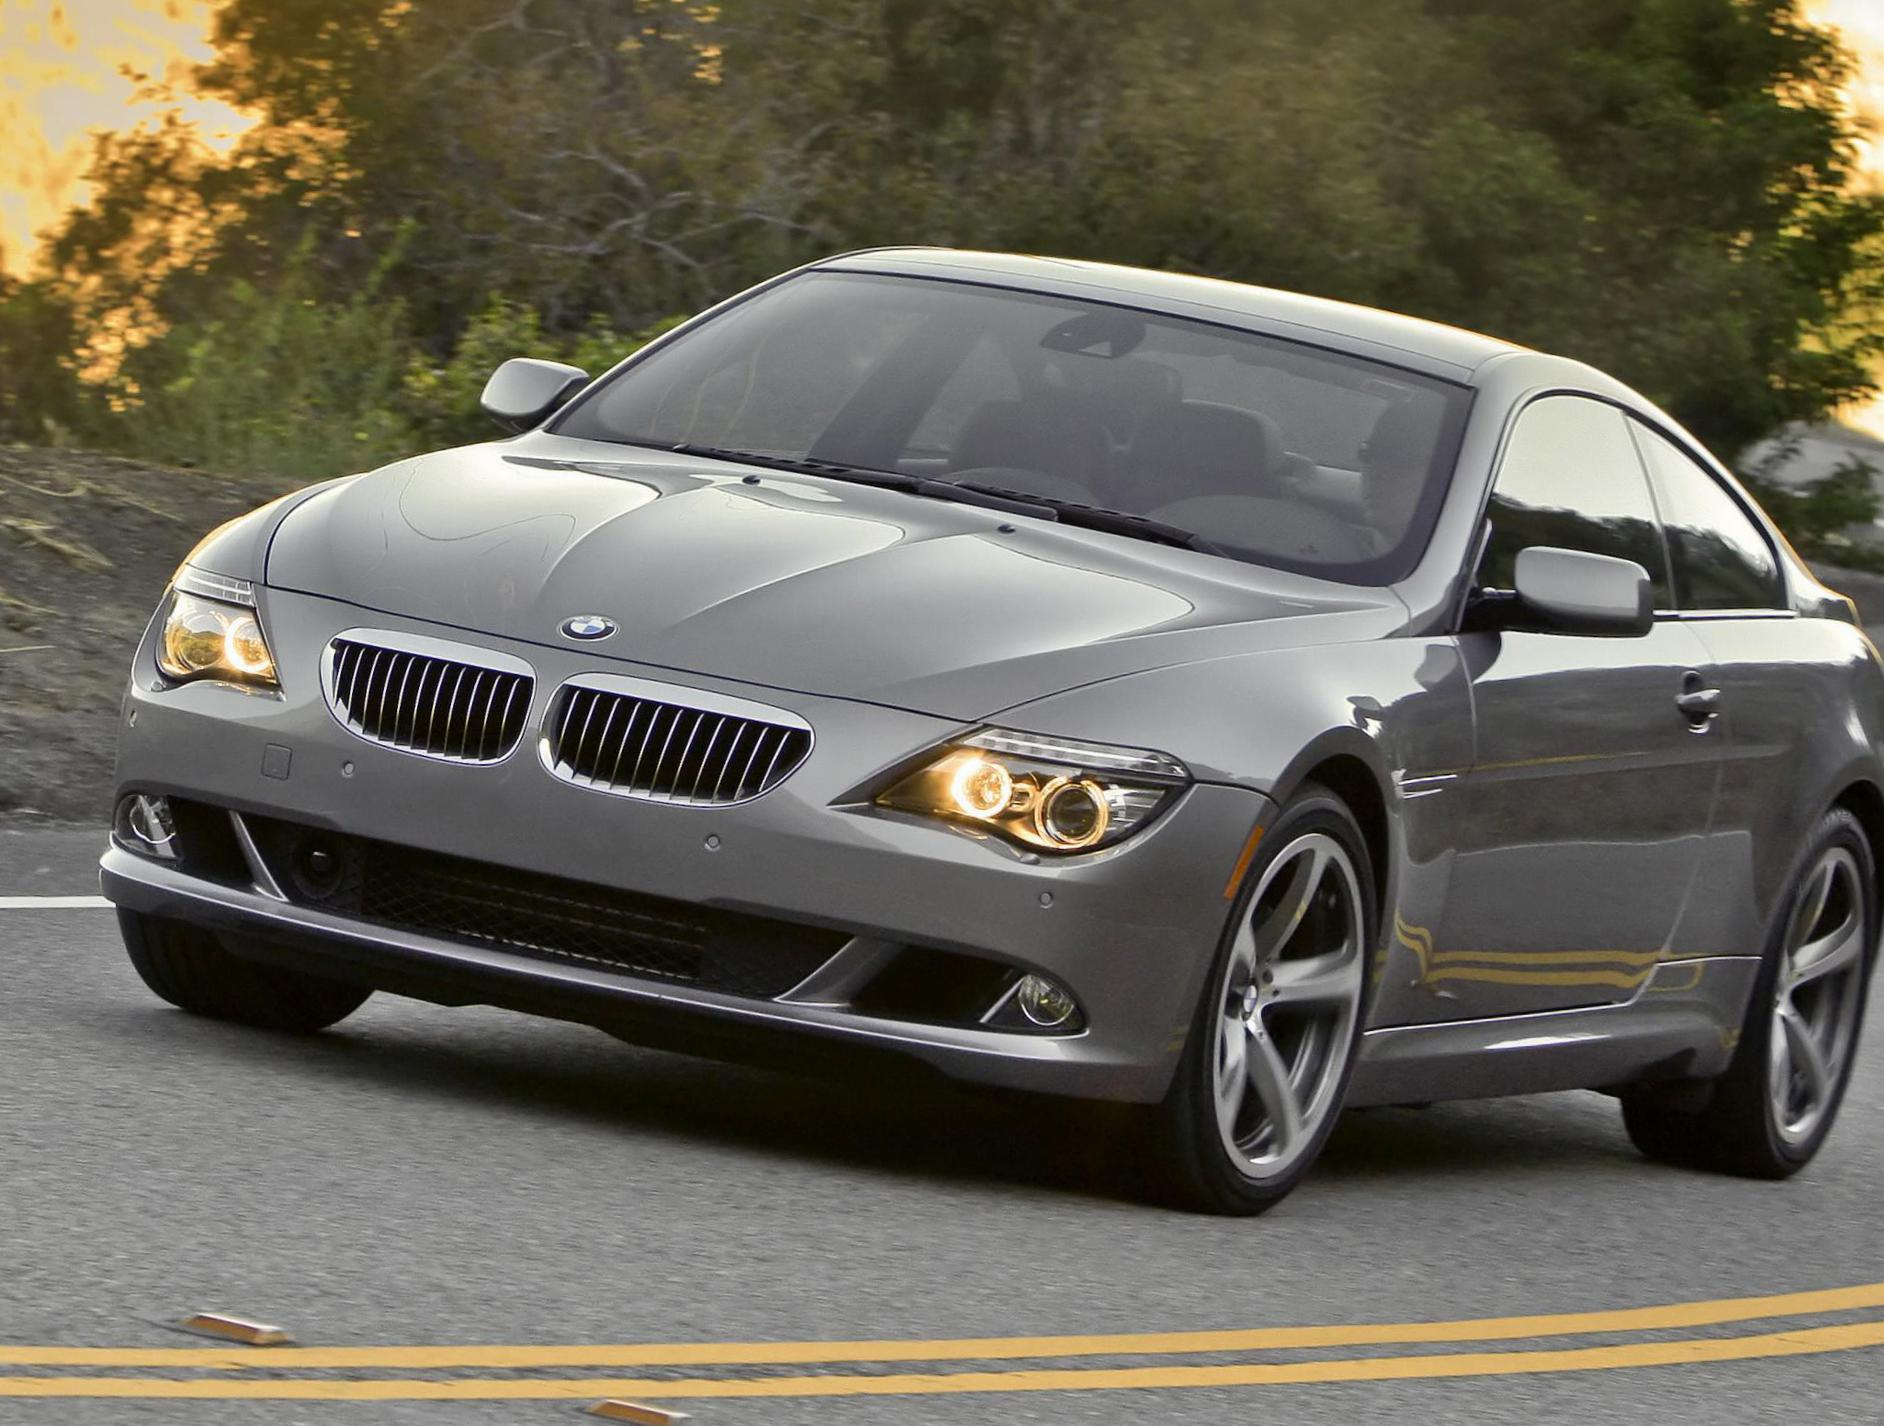 6 Series Coupe (E63) BMW concept hatchback